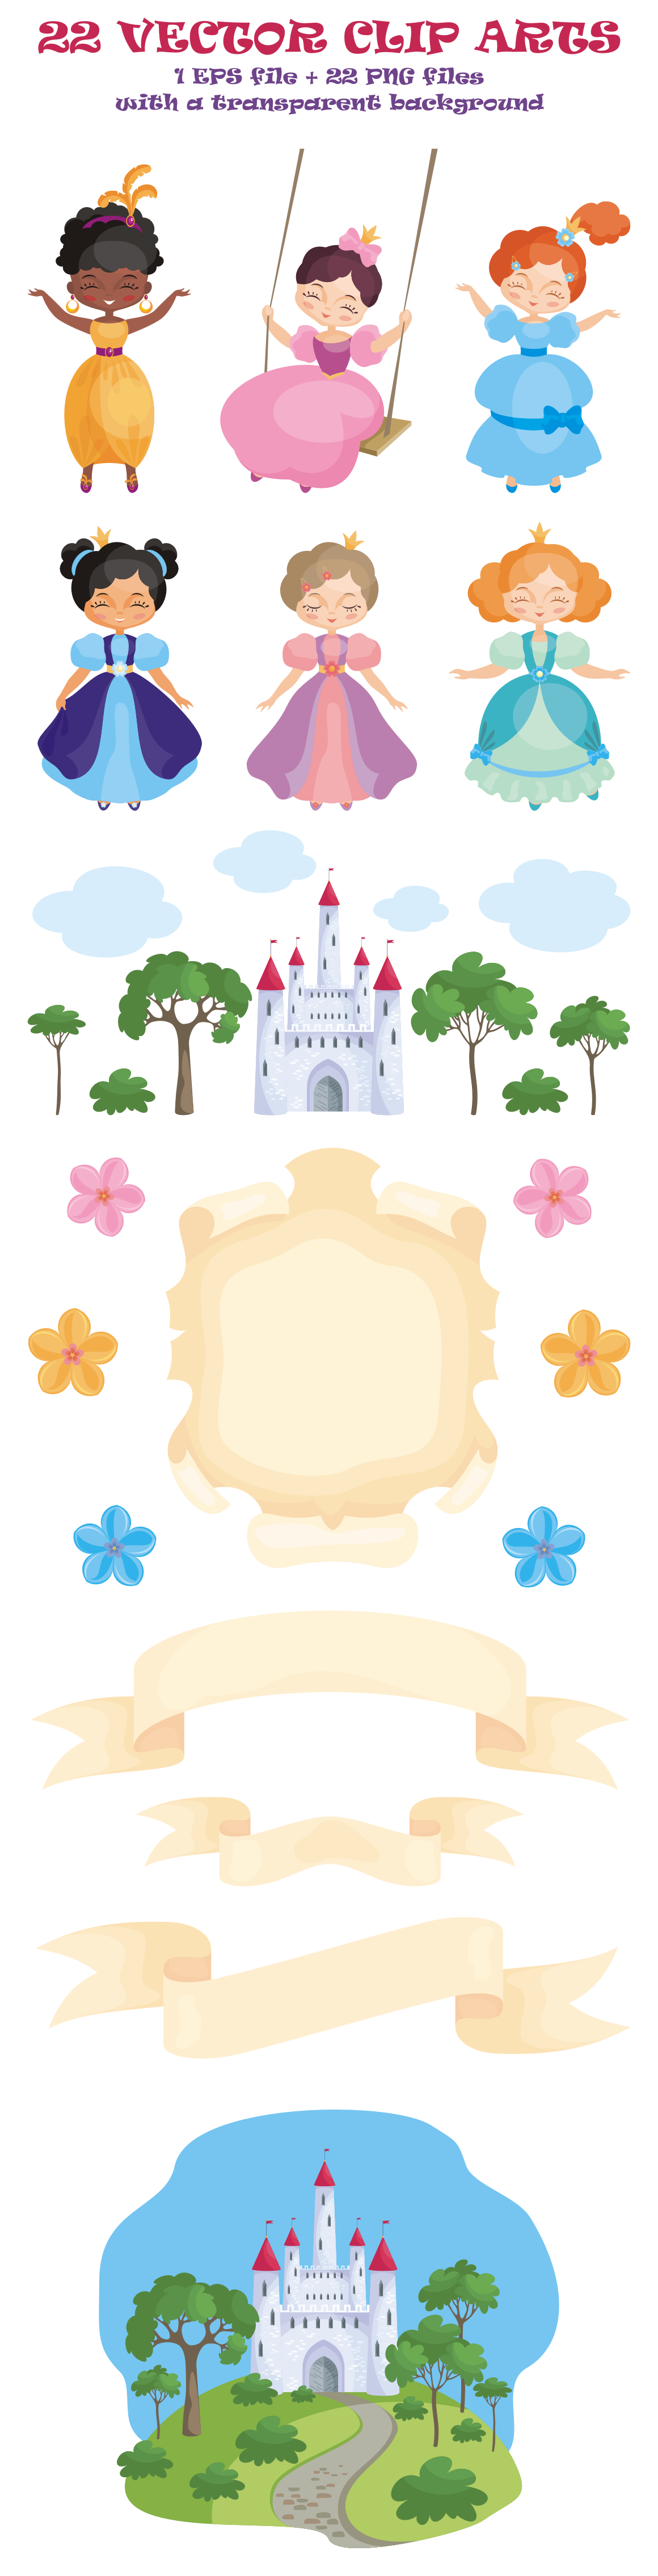 Download Free Princesses Vector Clip Art Illustrations Graphic By Olga Belova for Cricut Explore, Silhouette and other cutting machines.